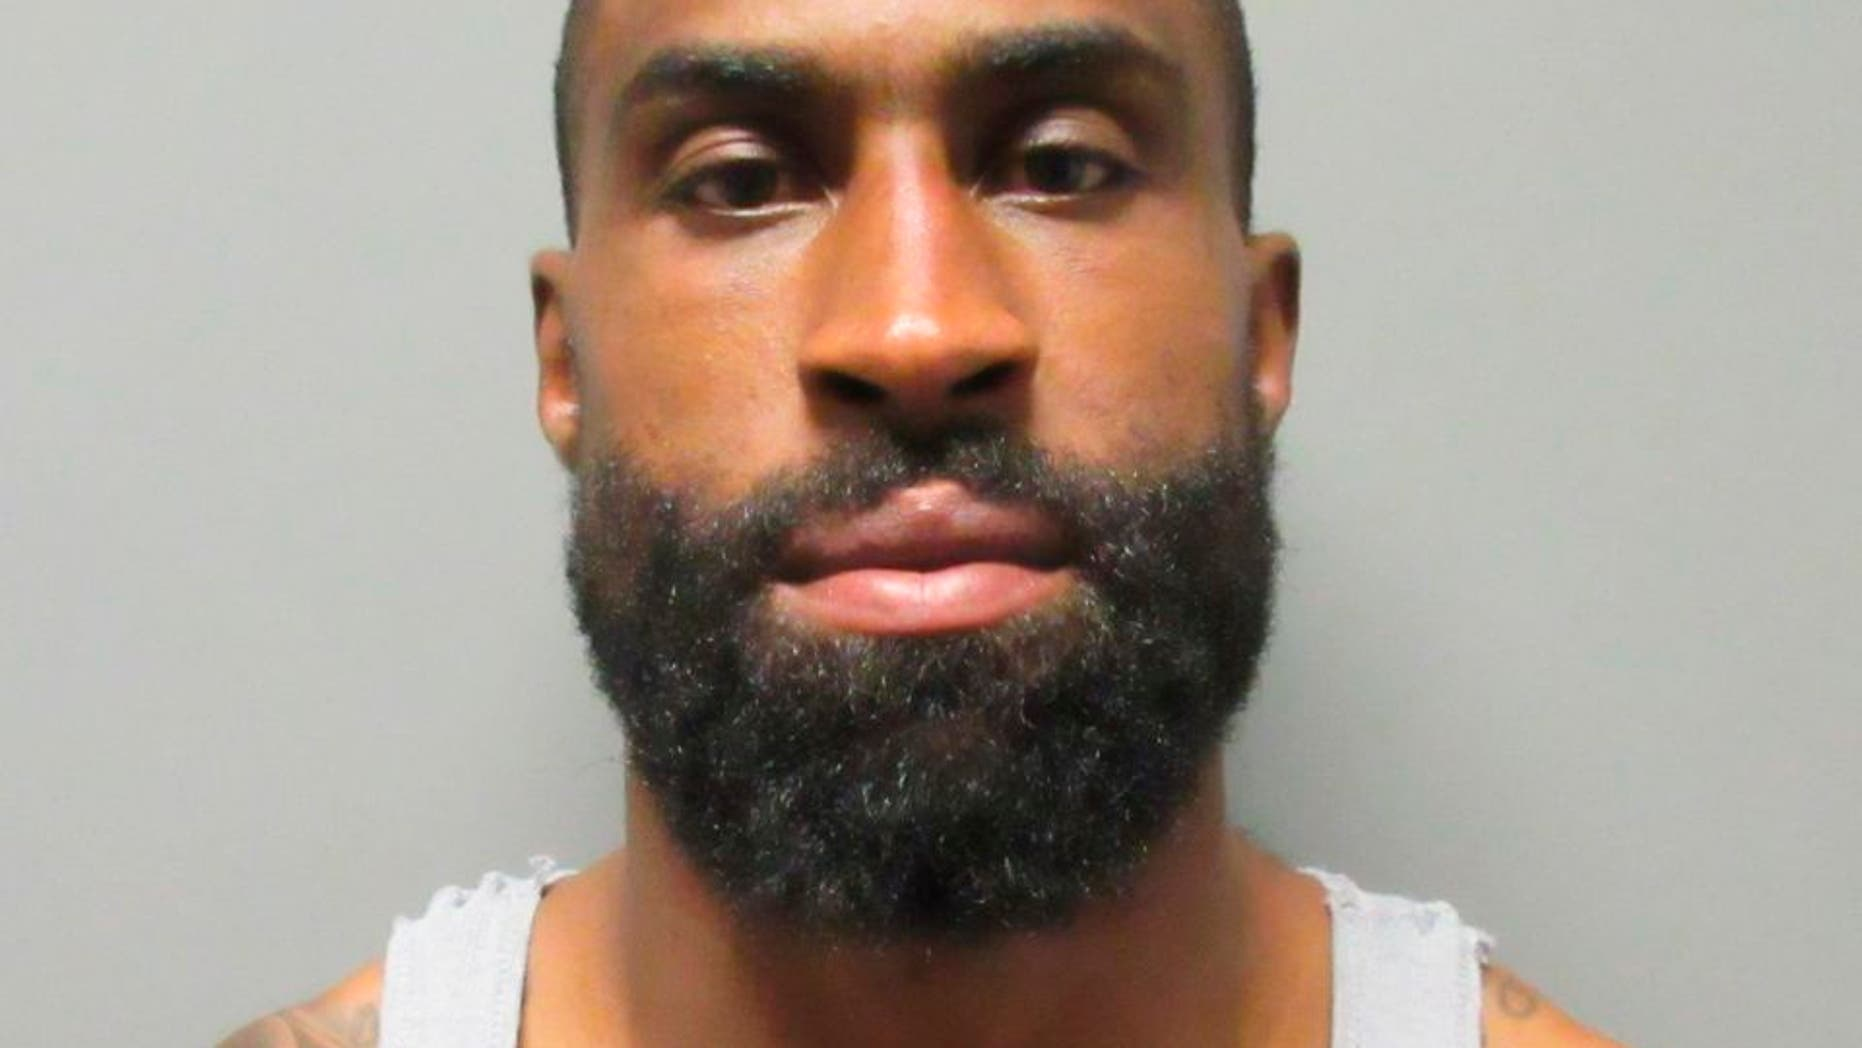 Brandon Browner was arrested in July for allegedly breaking into the Southern California home of his ex-girlfriend and threatening to kill her